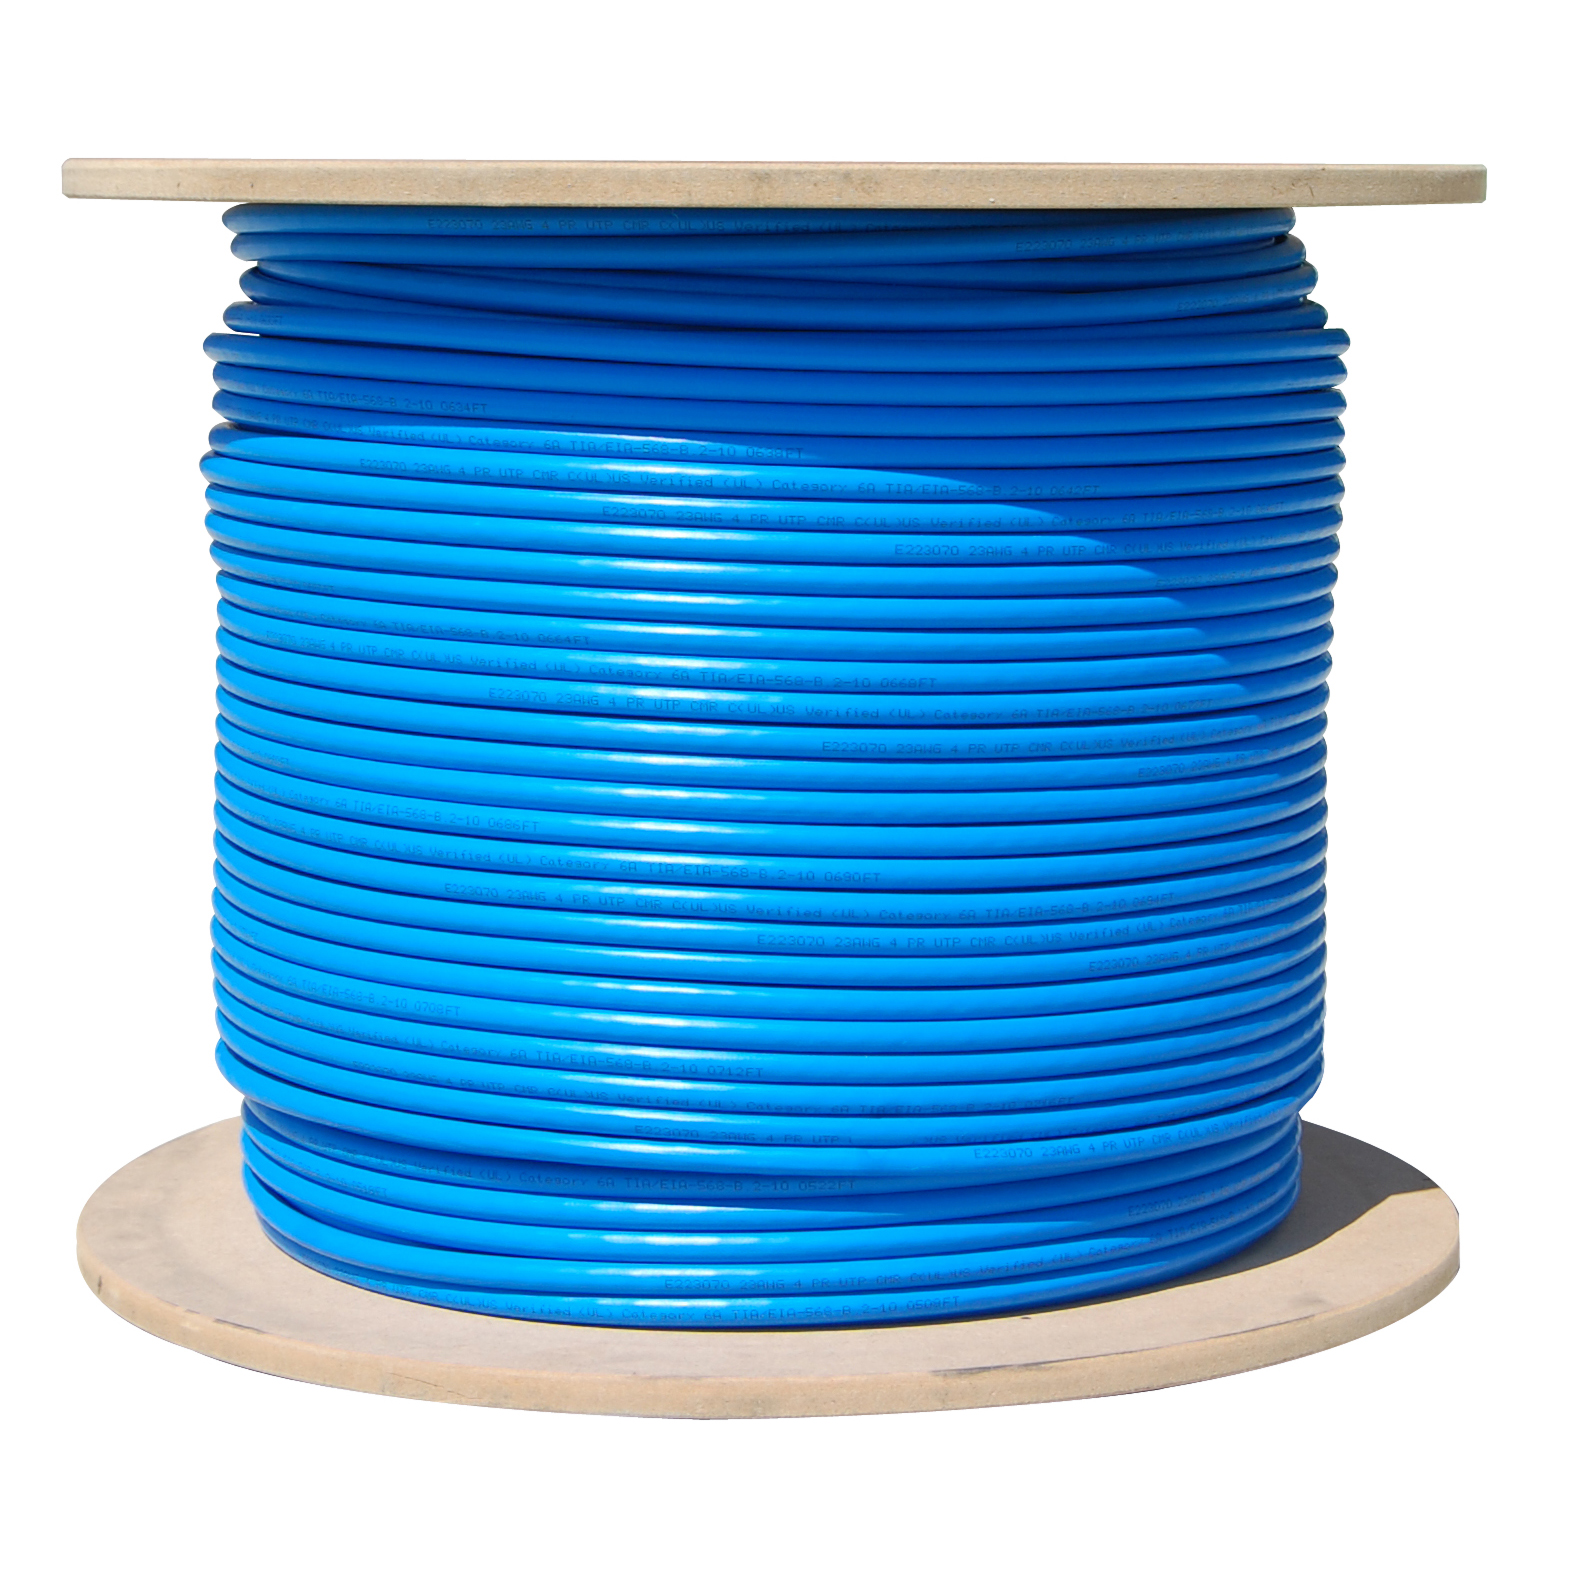 1000 Ft Electrical Wire Spool Center Mercury Prints Page 1 Iboats Boating Forums 522854 1000ft Solid Cat6a Blue Ethernet Cable 10gb Rh Cablewholesale Com Twisted And